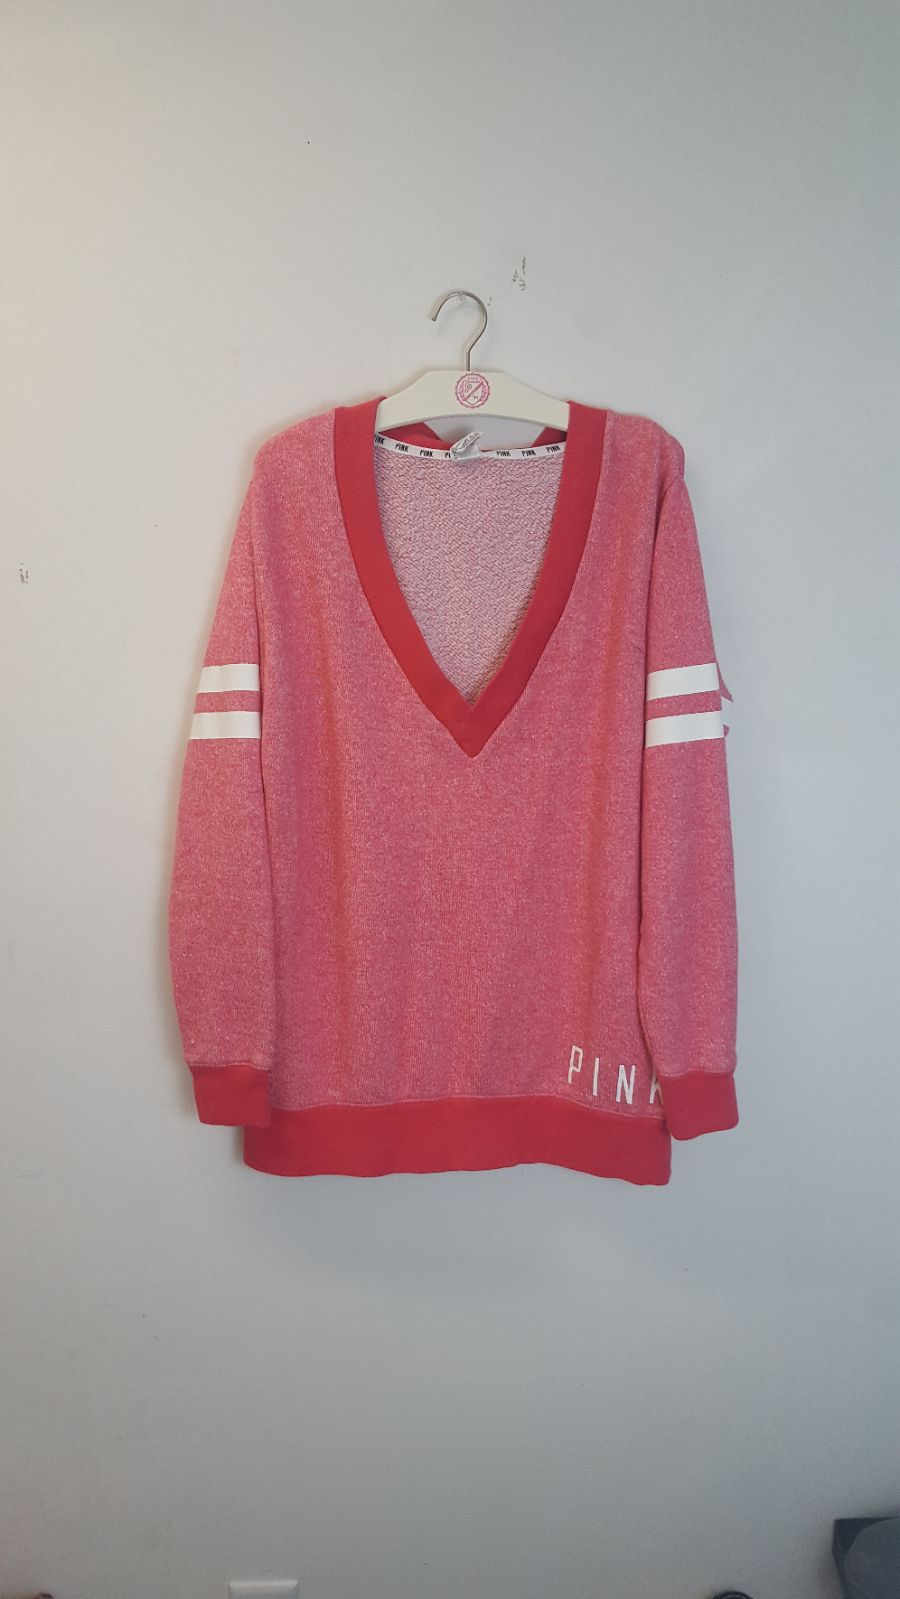 VS PINK M V Neck Pastel Red Sweater - Mercari: BUY & SELL THINGS ...